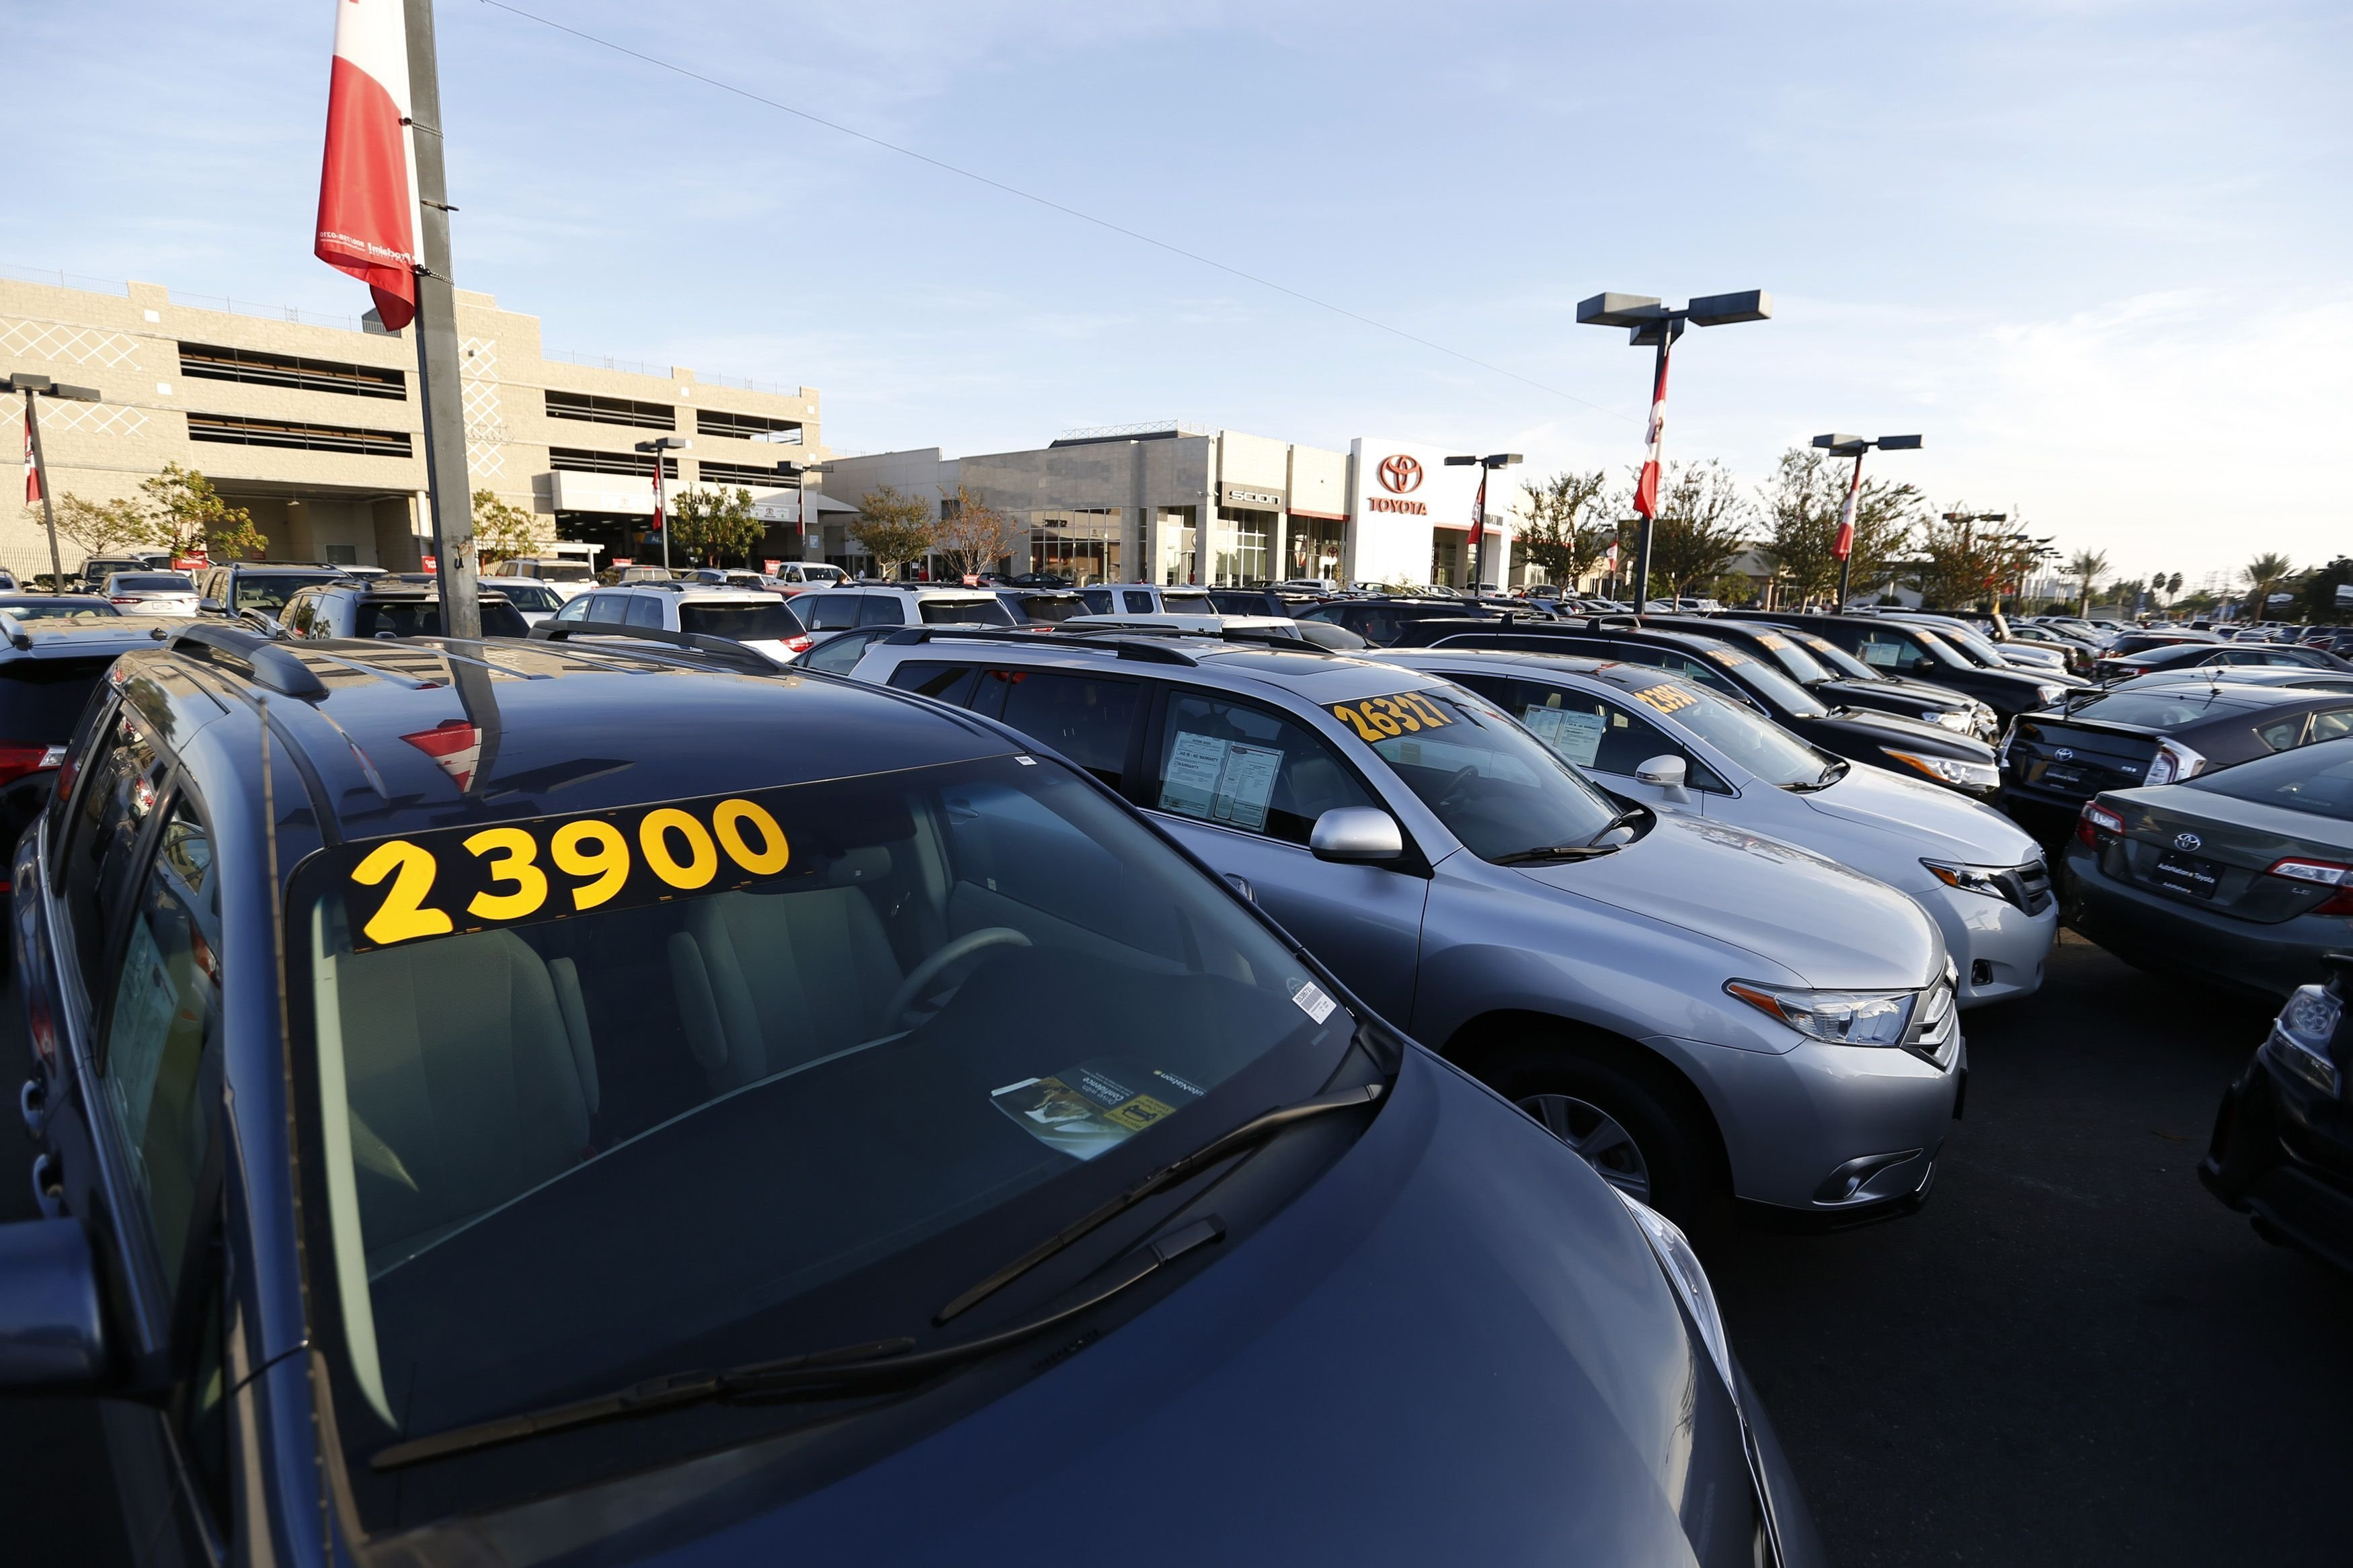 New Illinois Law Requires Car Dealerships To Remove Stickers Before